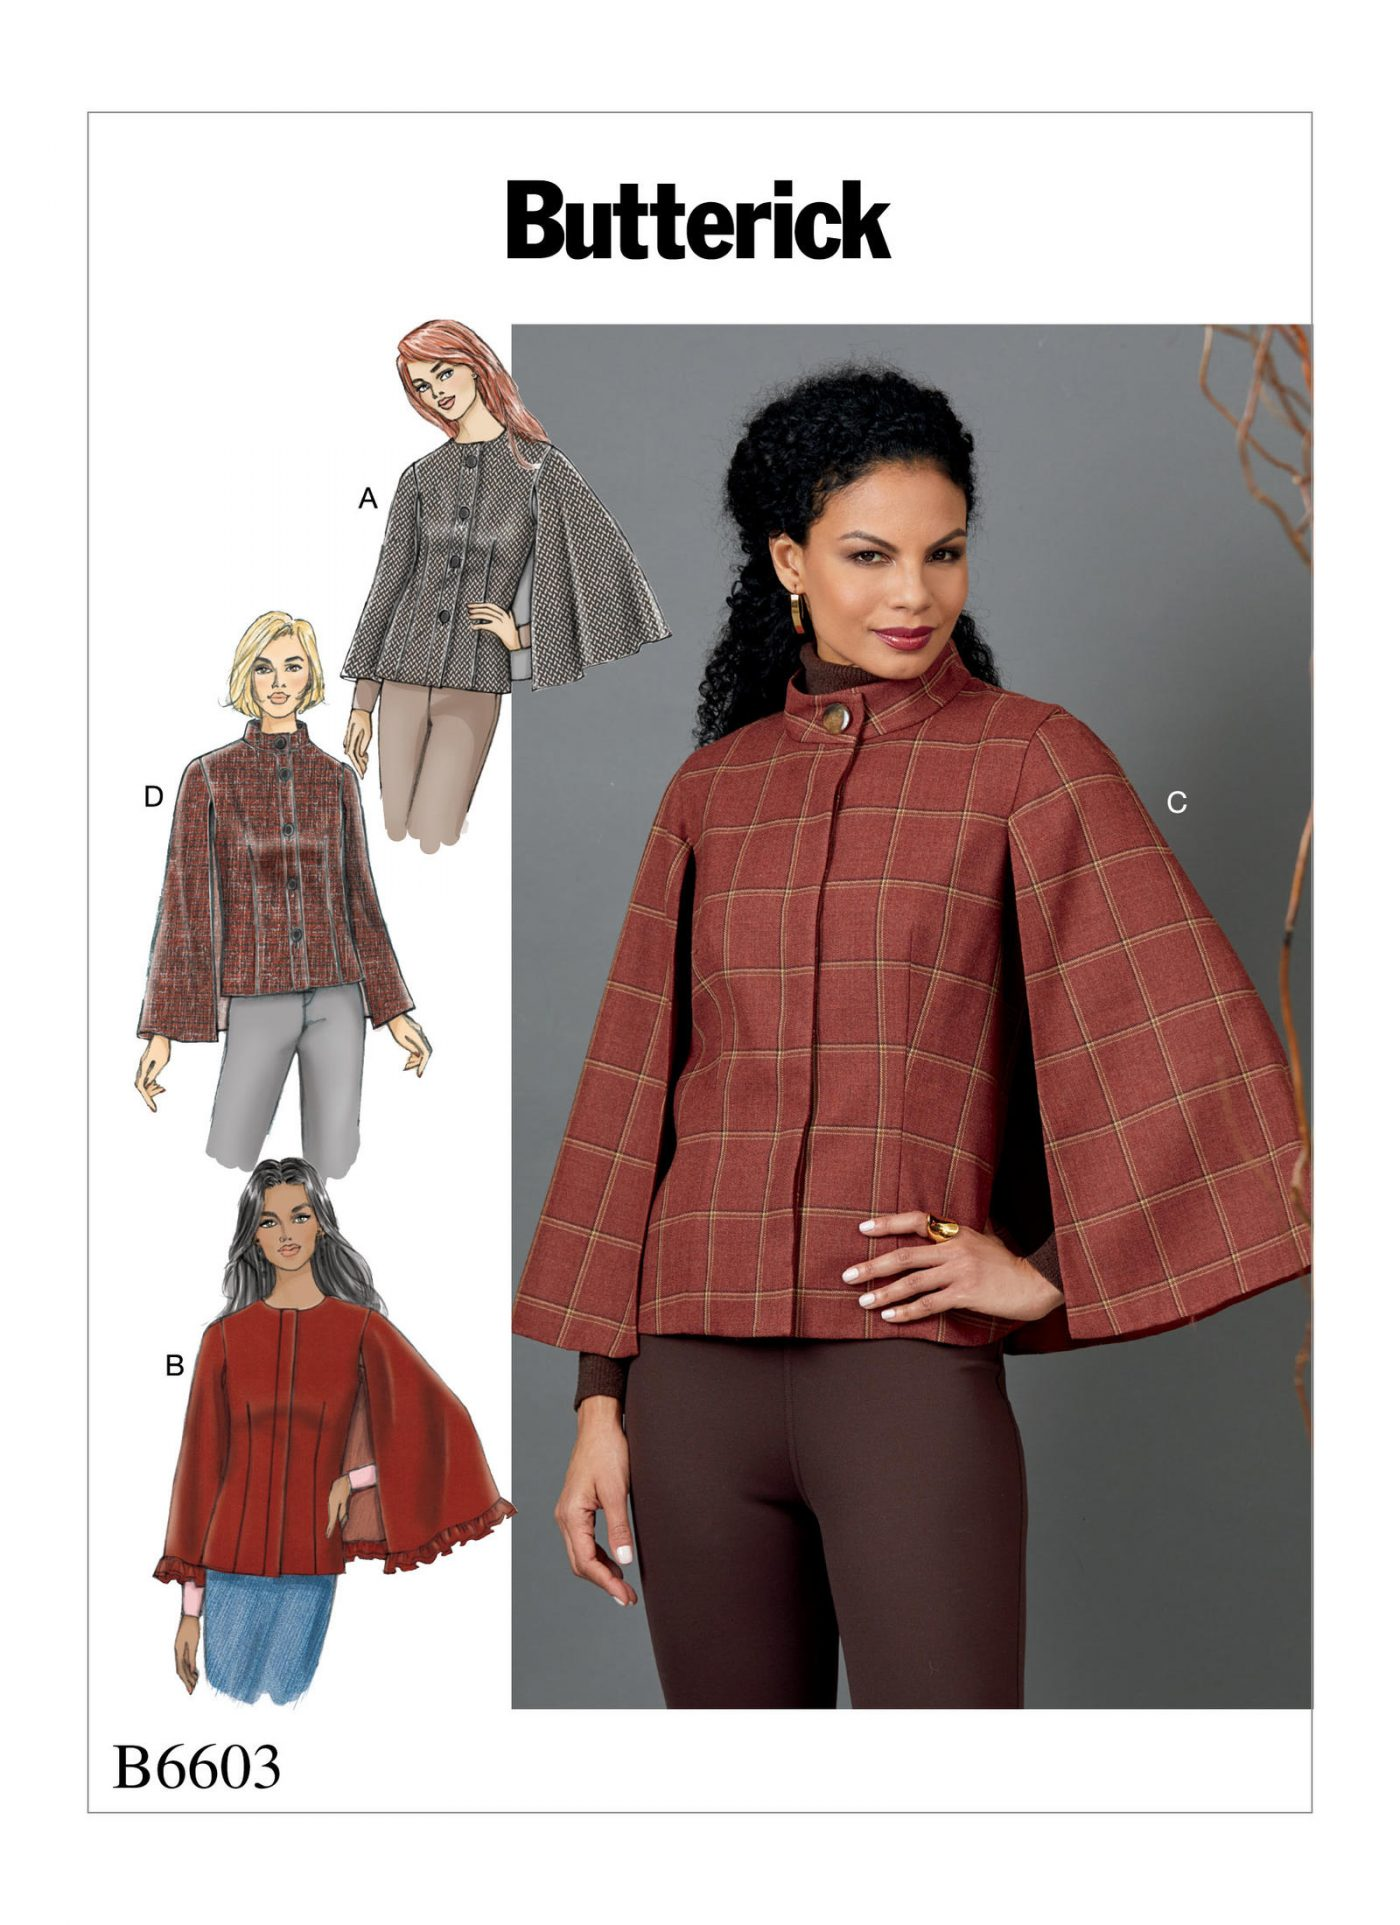 B6603 Autumn/Winter '18 Trends to inspire your sewing